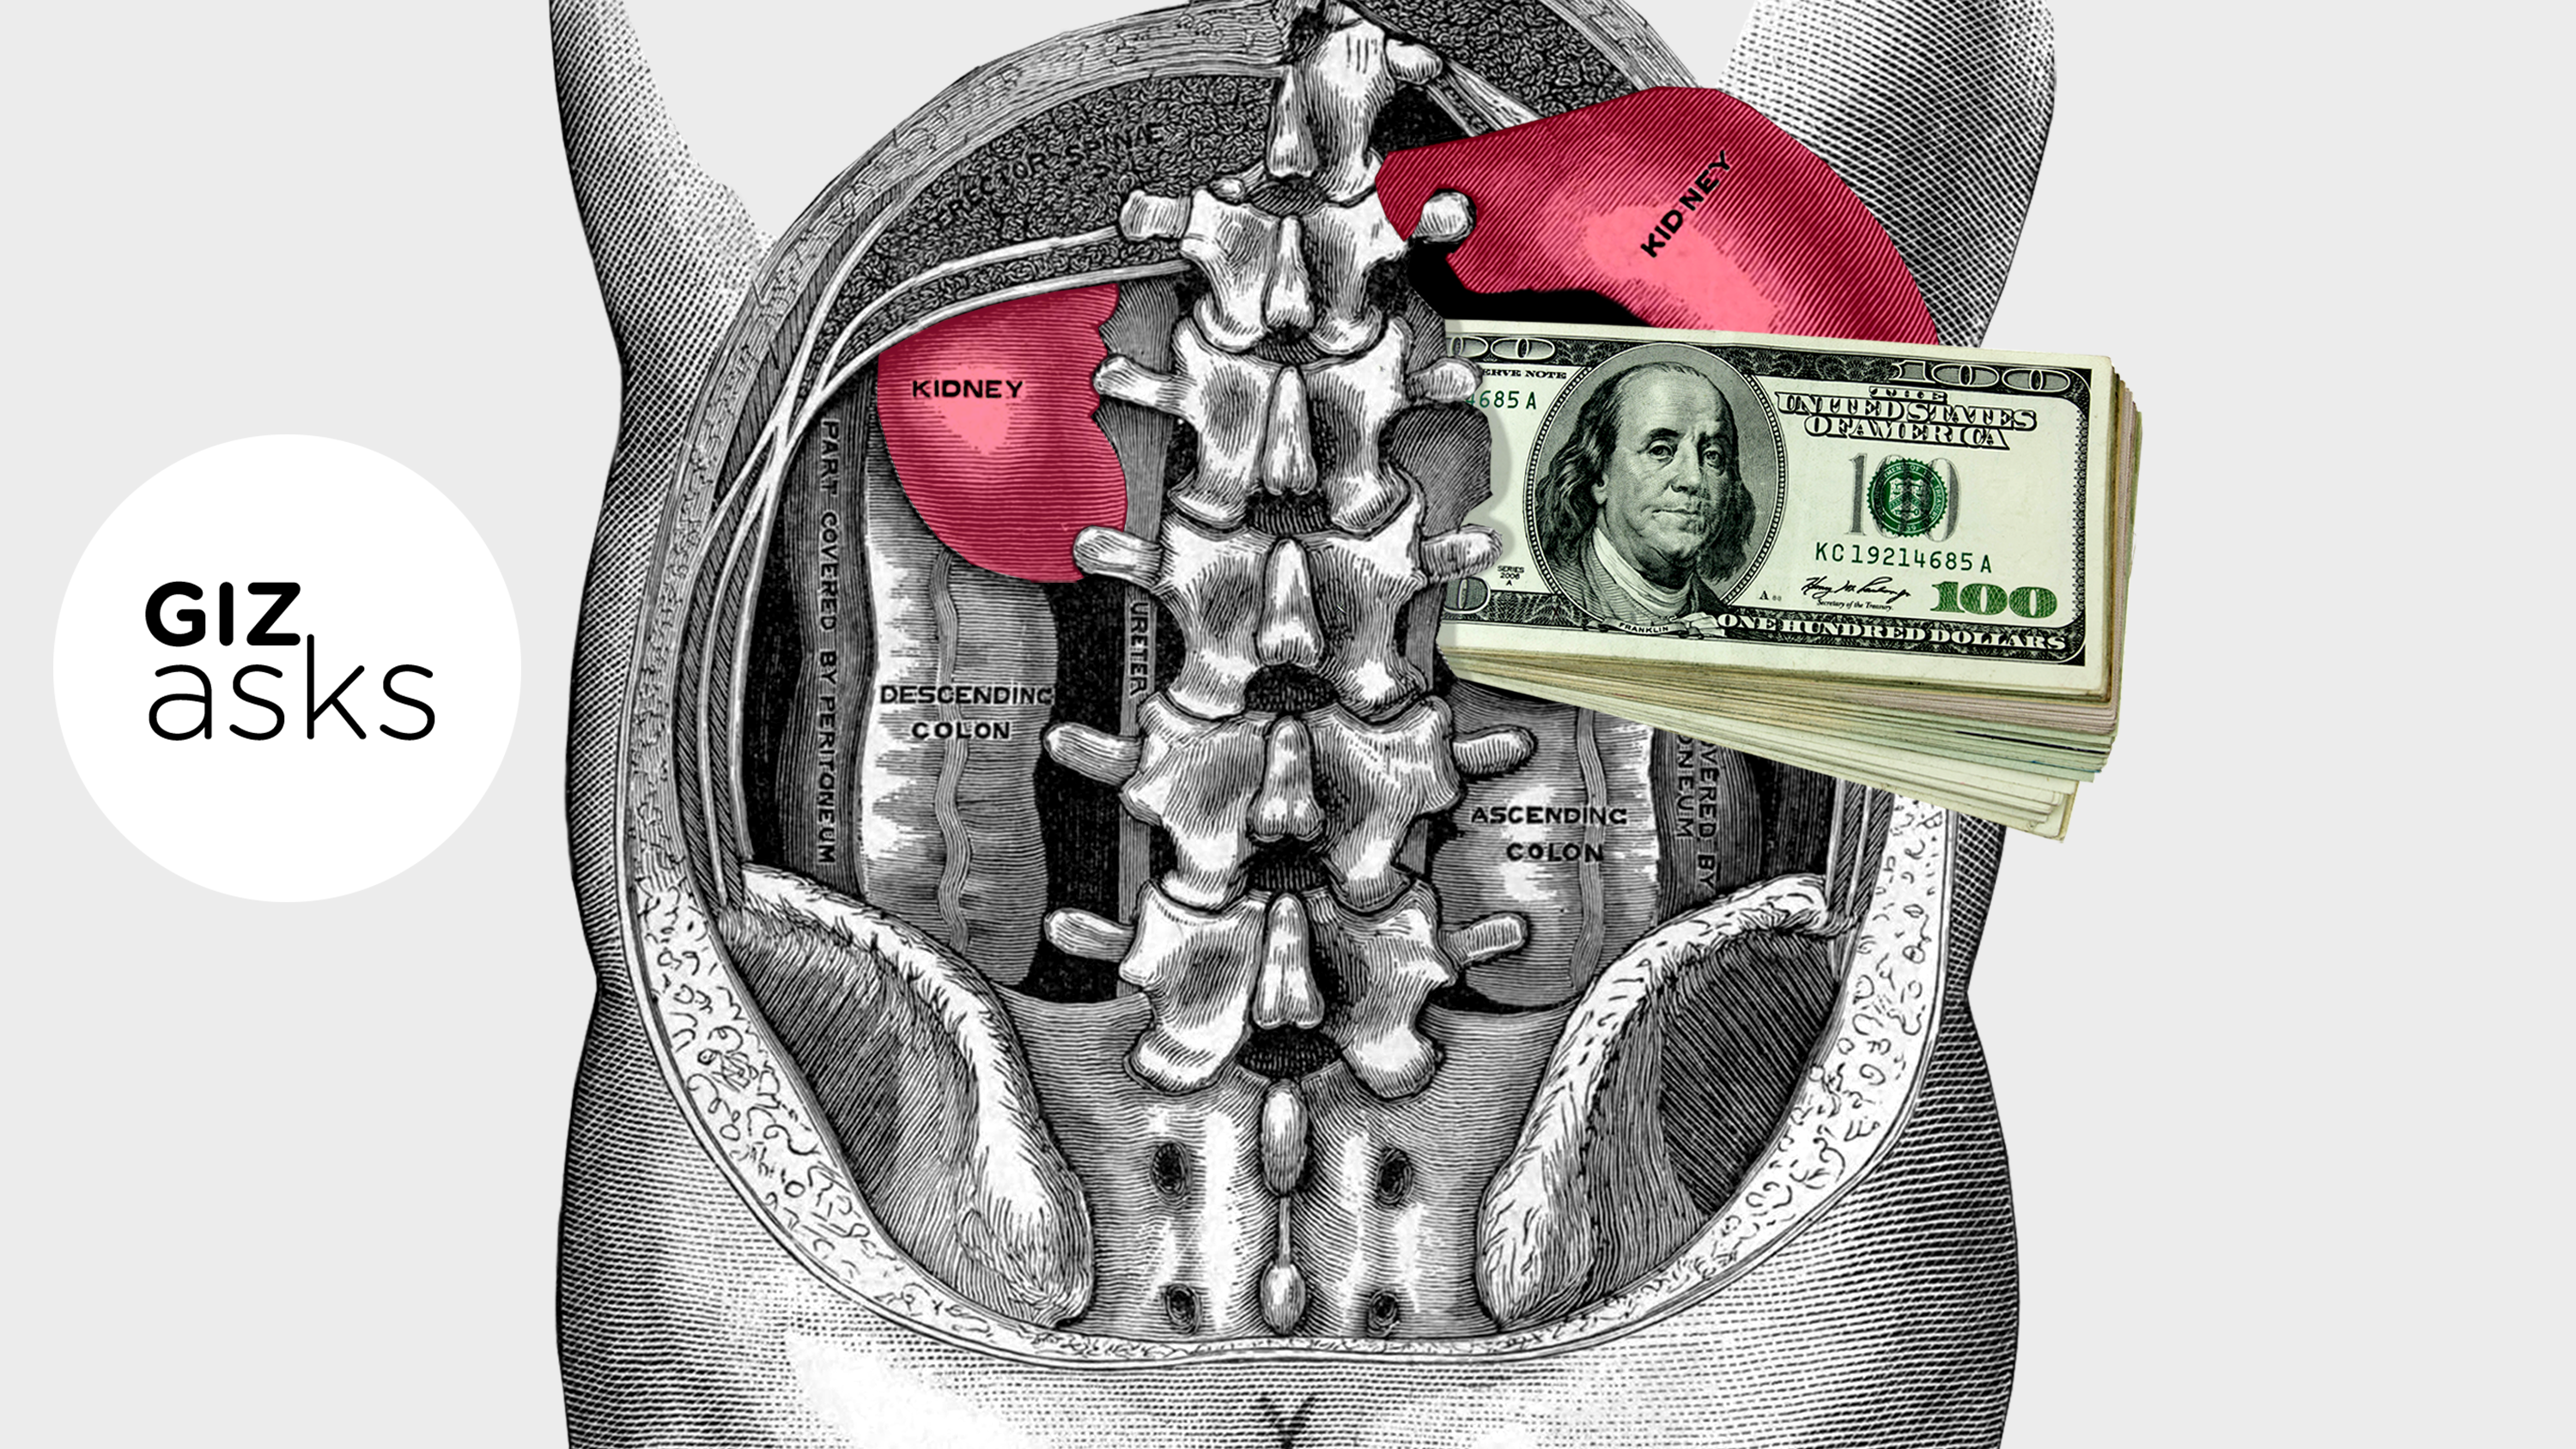 Should You Be Allowed To Sell Your Kidney?